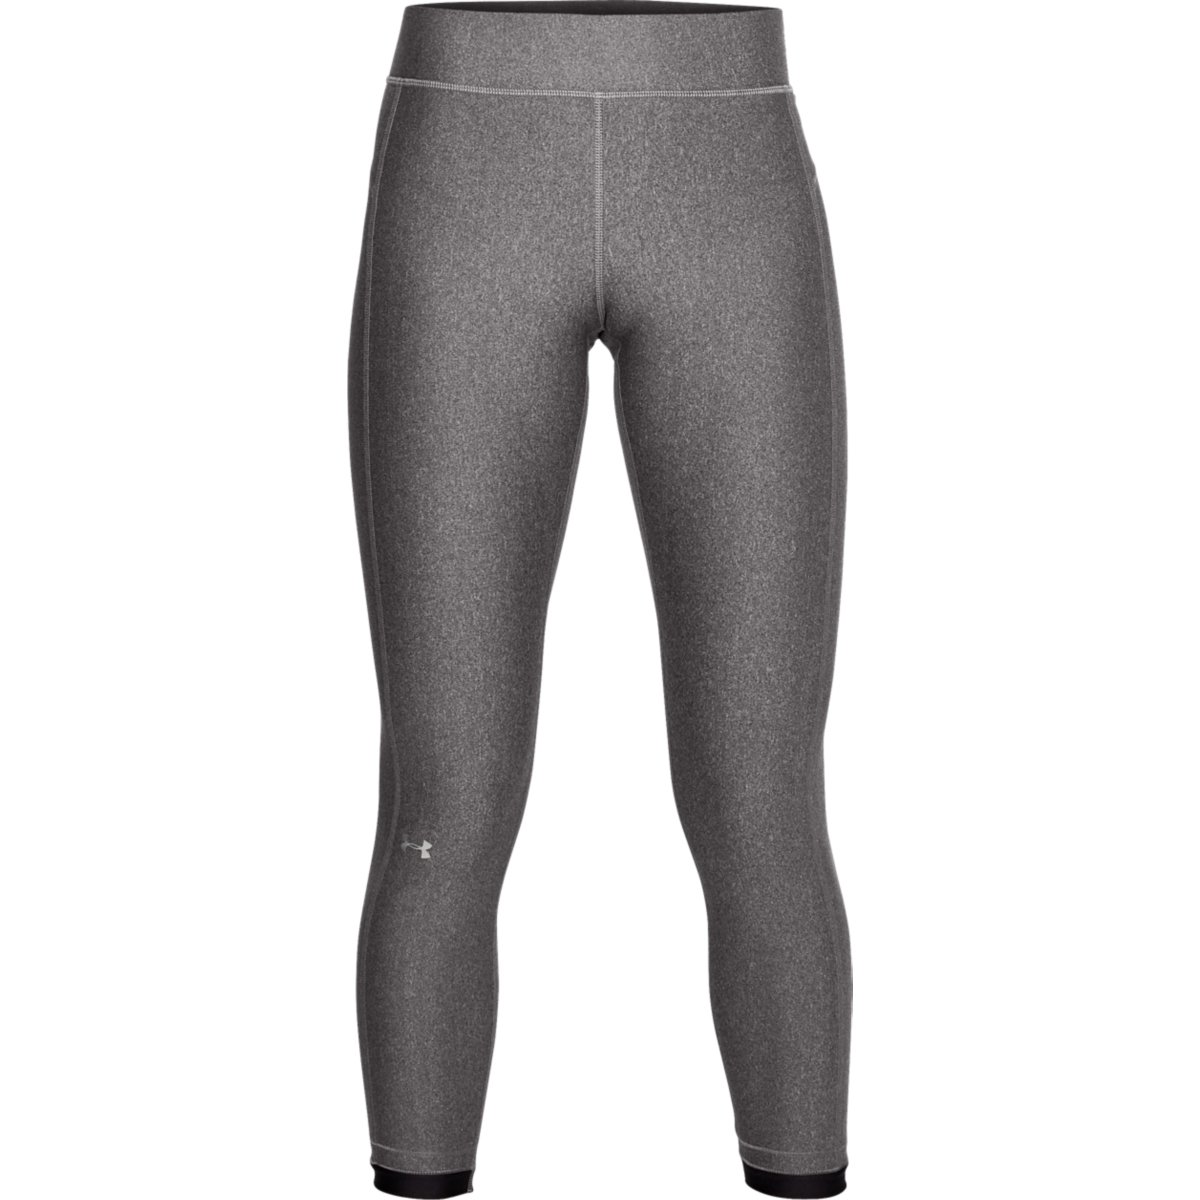 Under Armour Women's HeatGear Armour Ankle Crop Tight | Amour